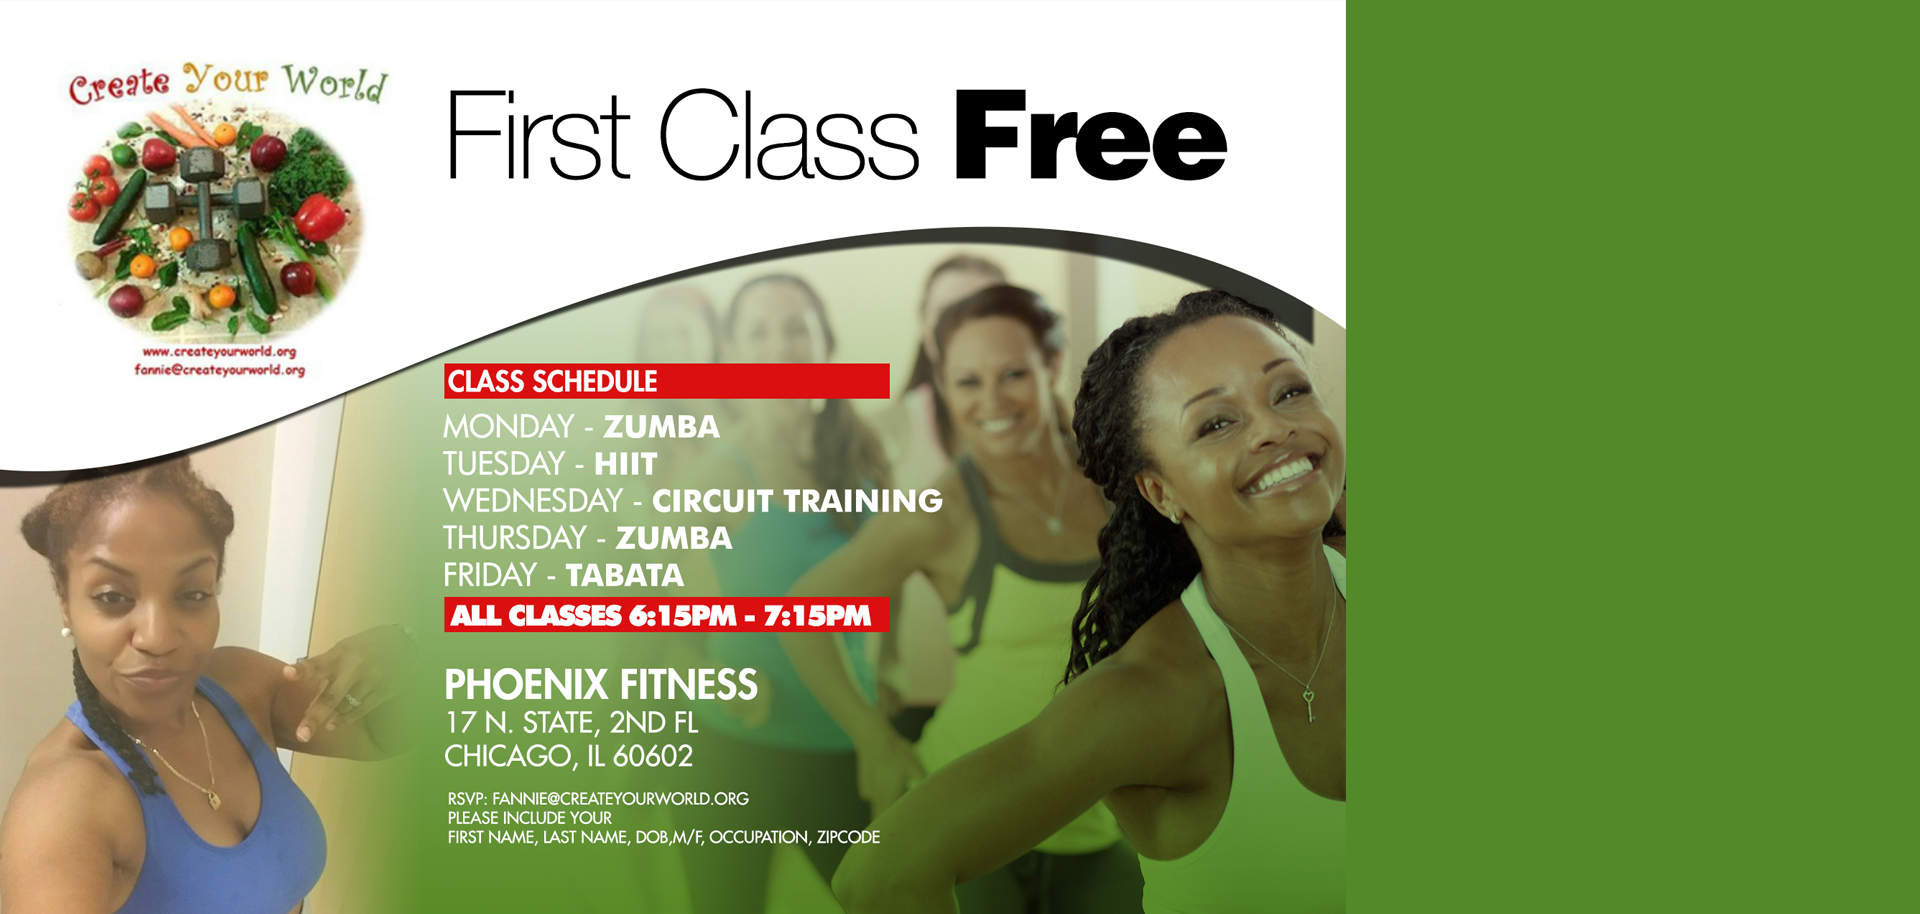 First Class Free